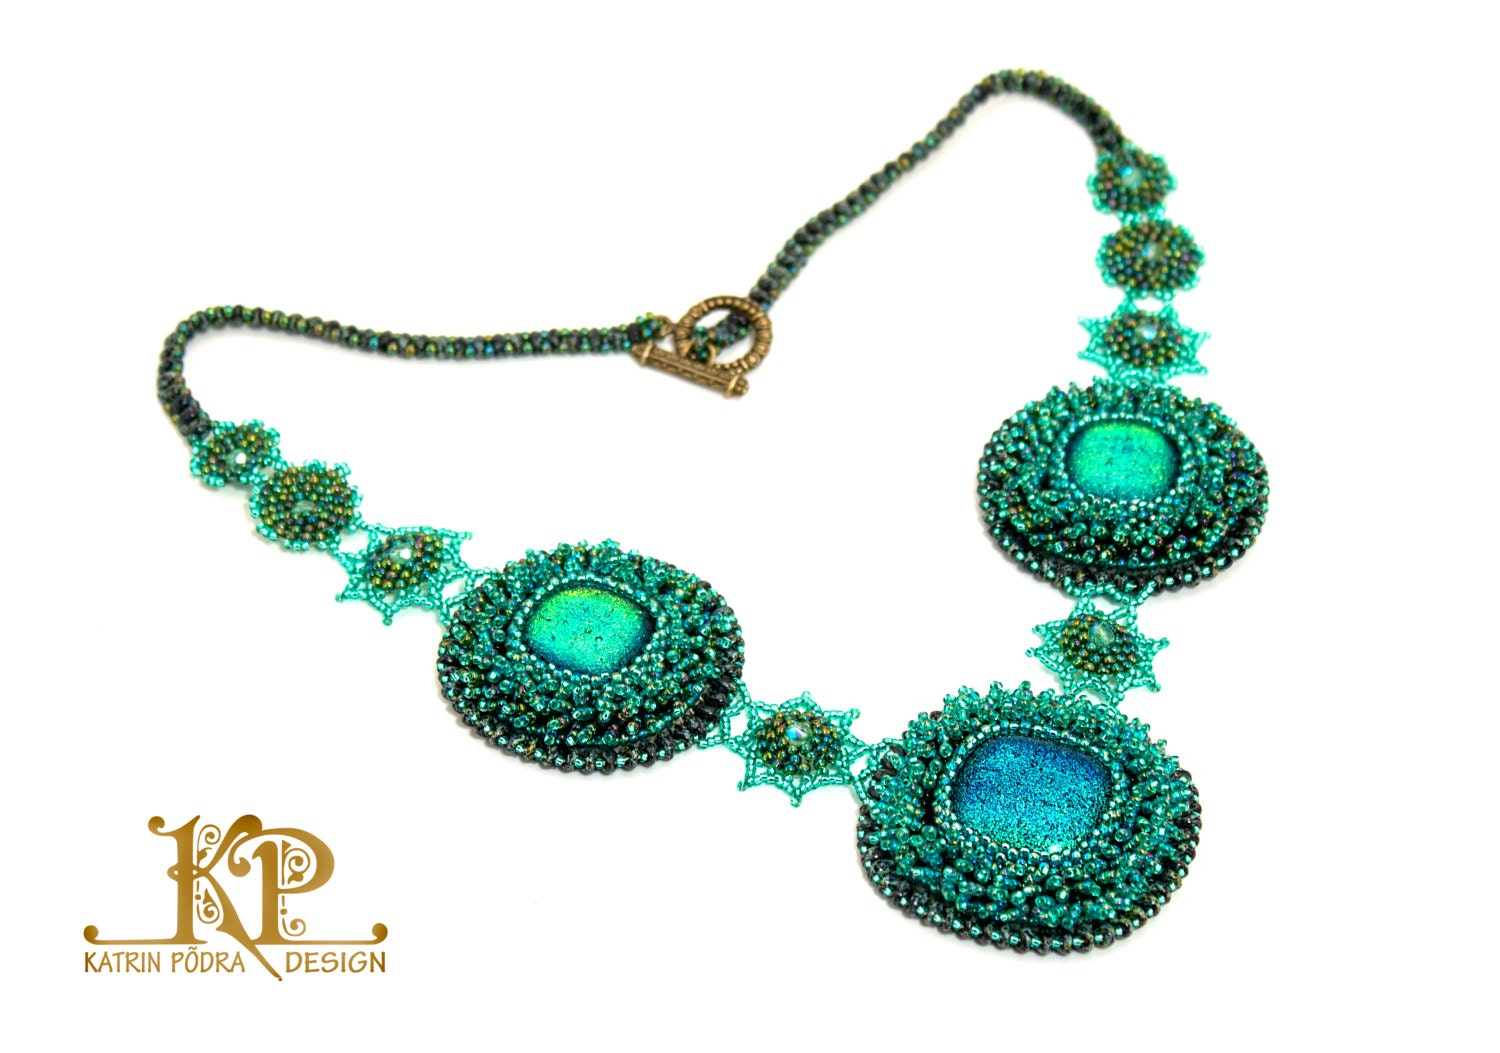 Ooak bead embroidery necklace green energy with dichroic glass